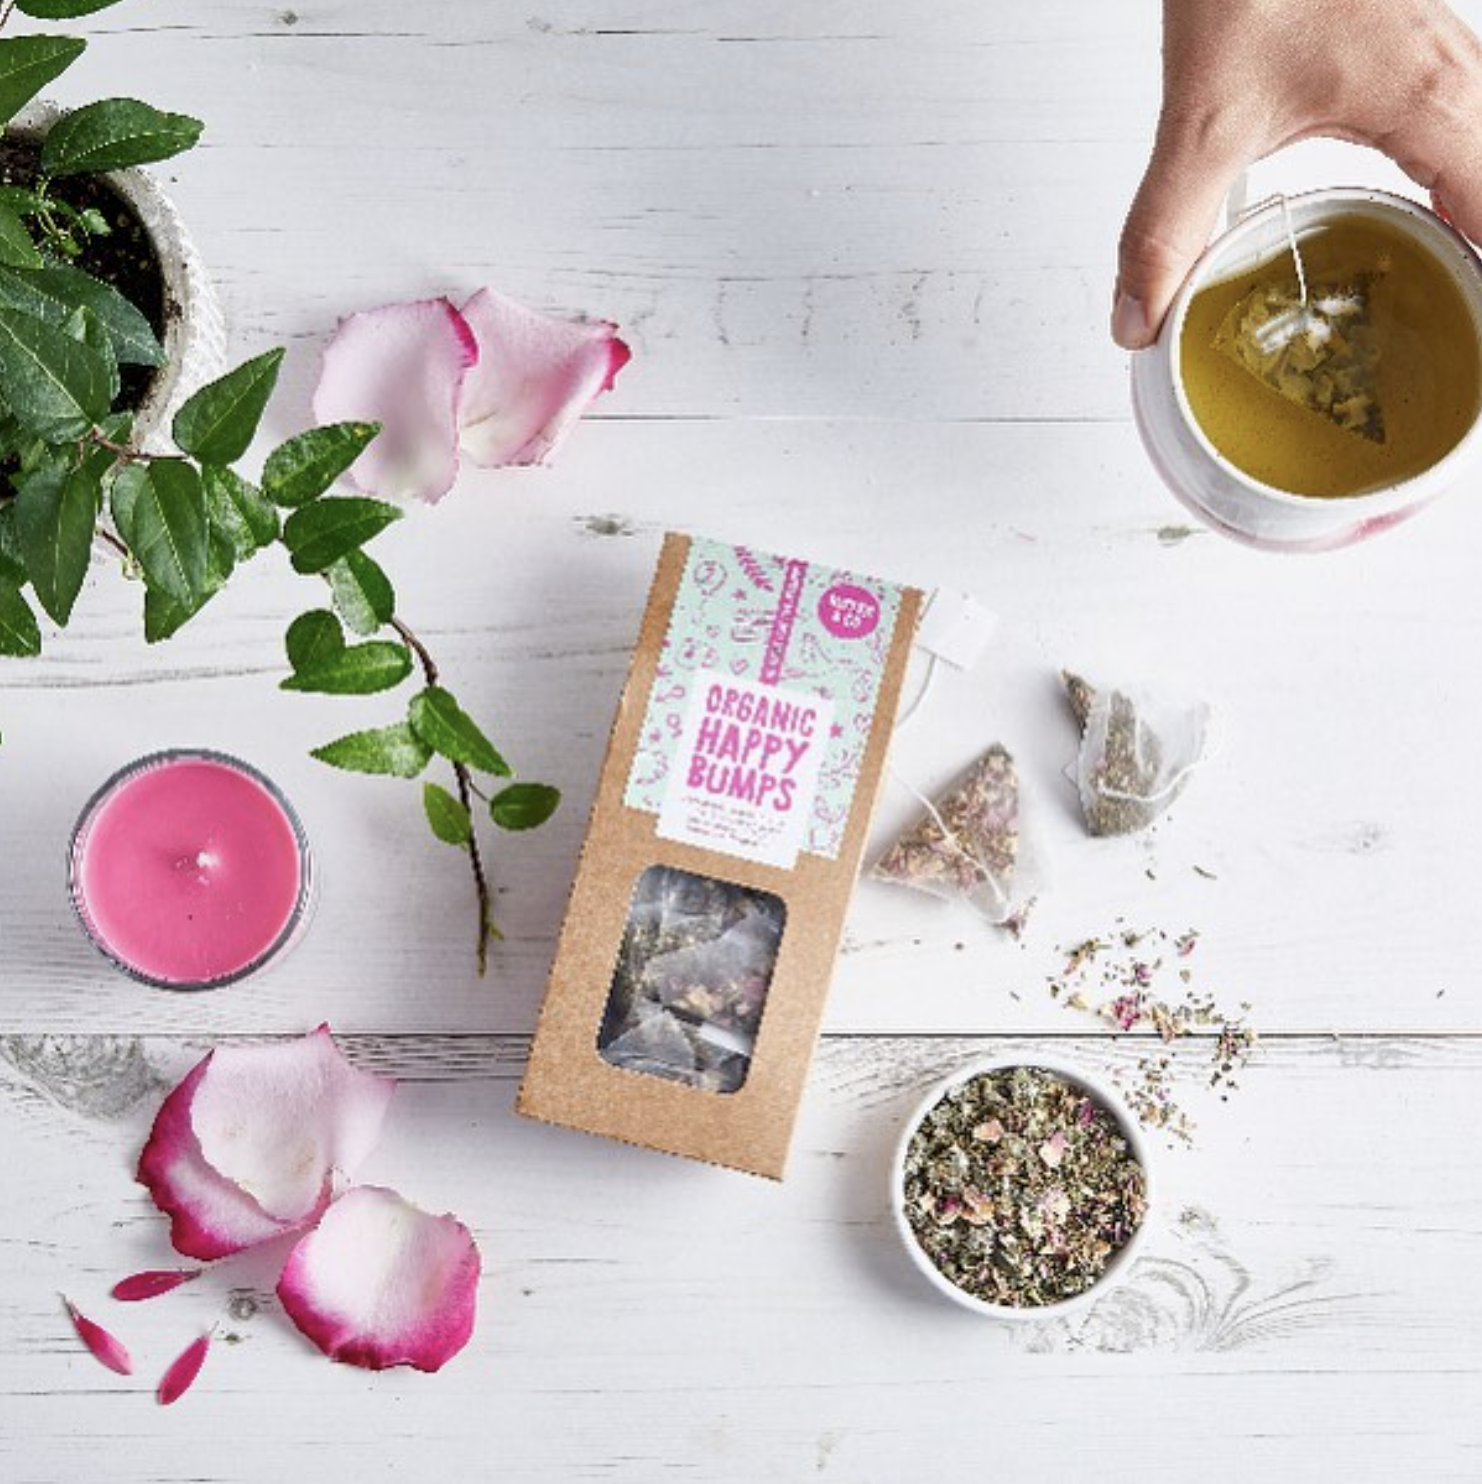 nipper co hampstead mums tea herbal organic